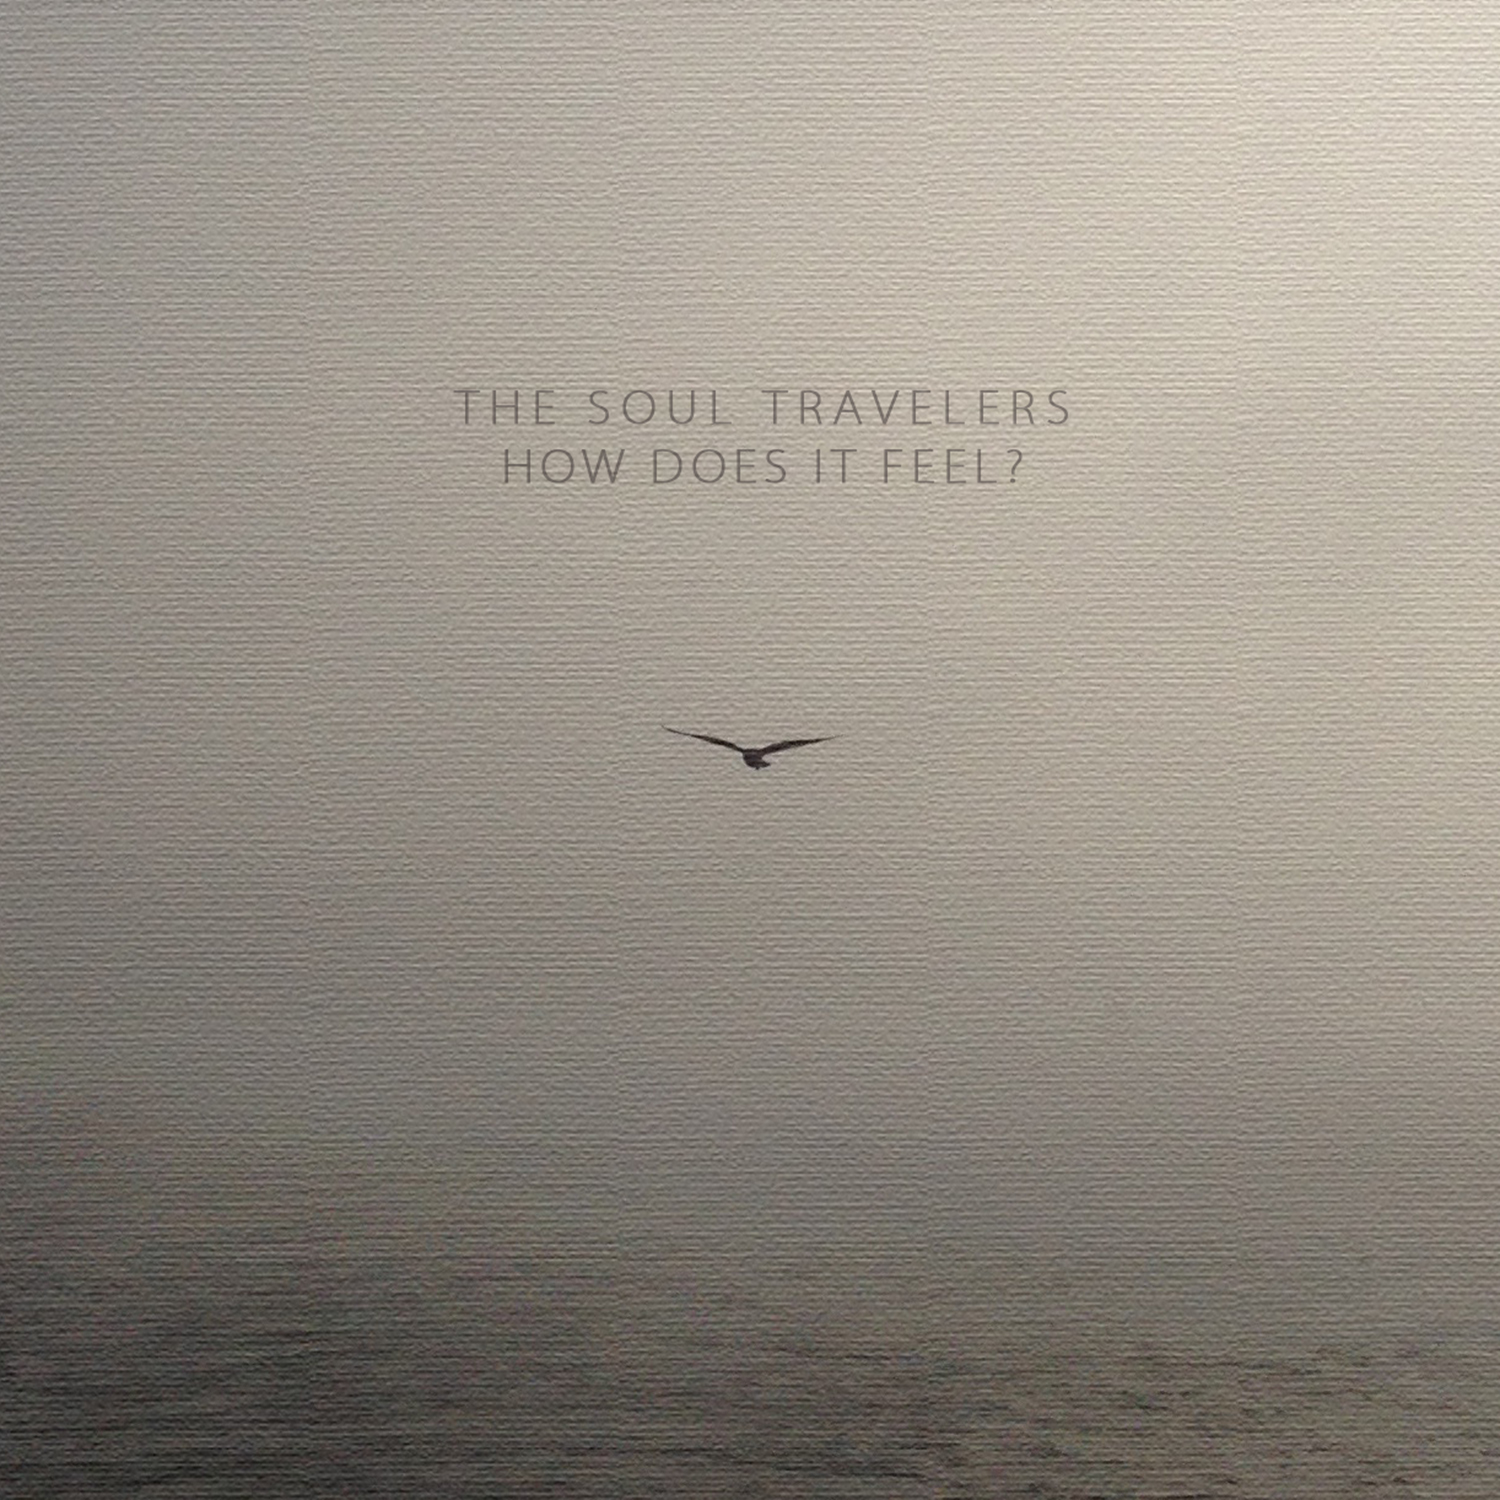 How Does It Feel Cover 1500x1500.jpg